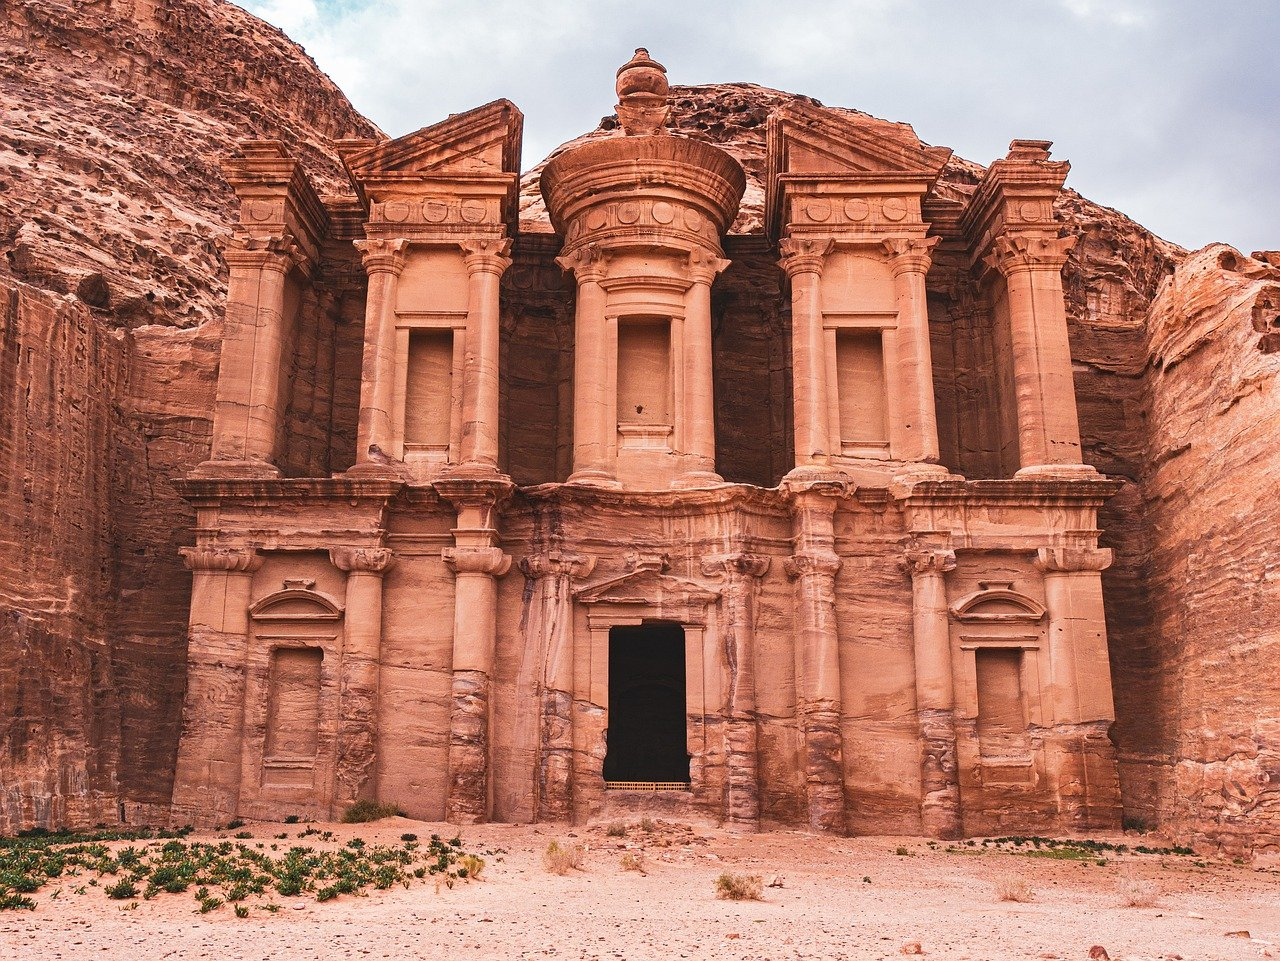 Petra (Rose City), Jordan